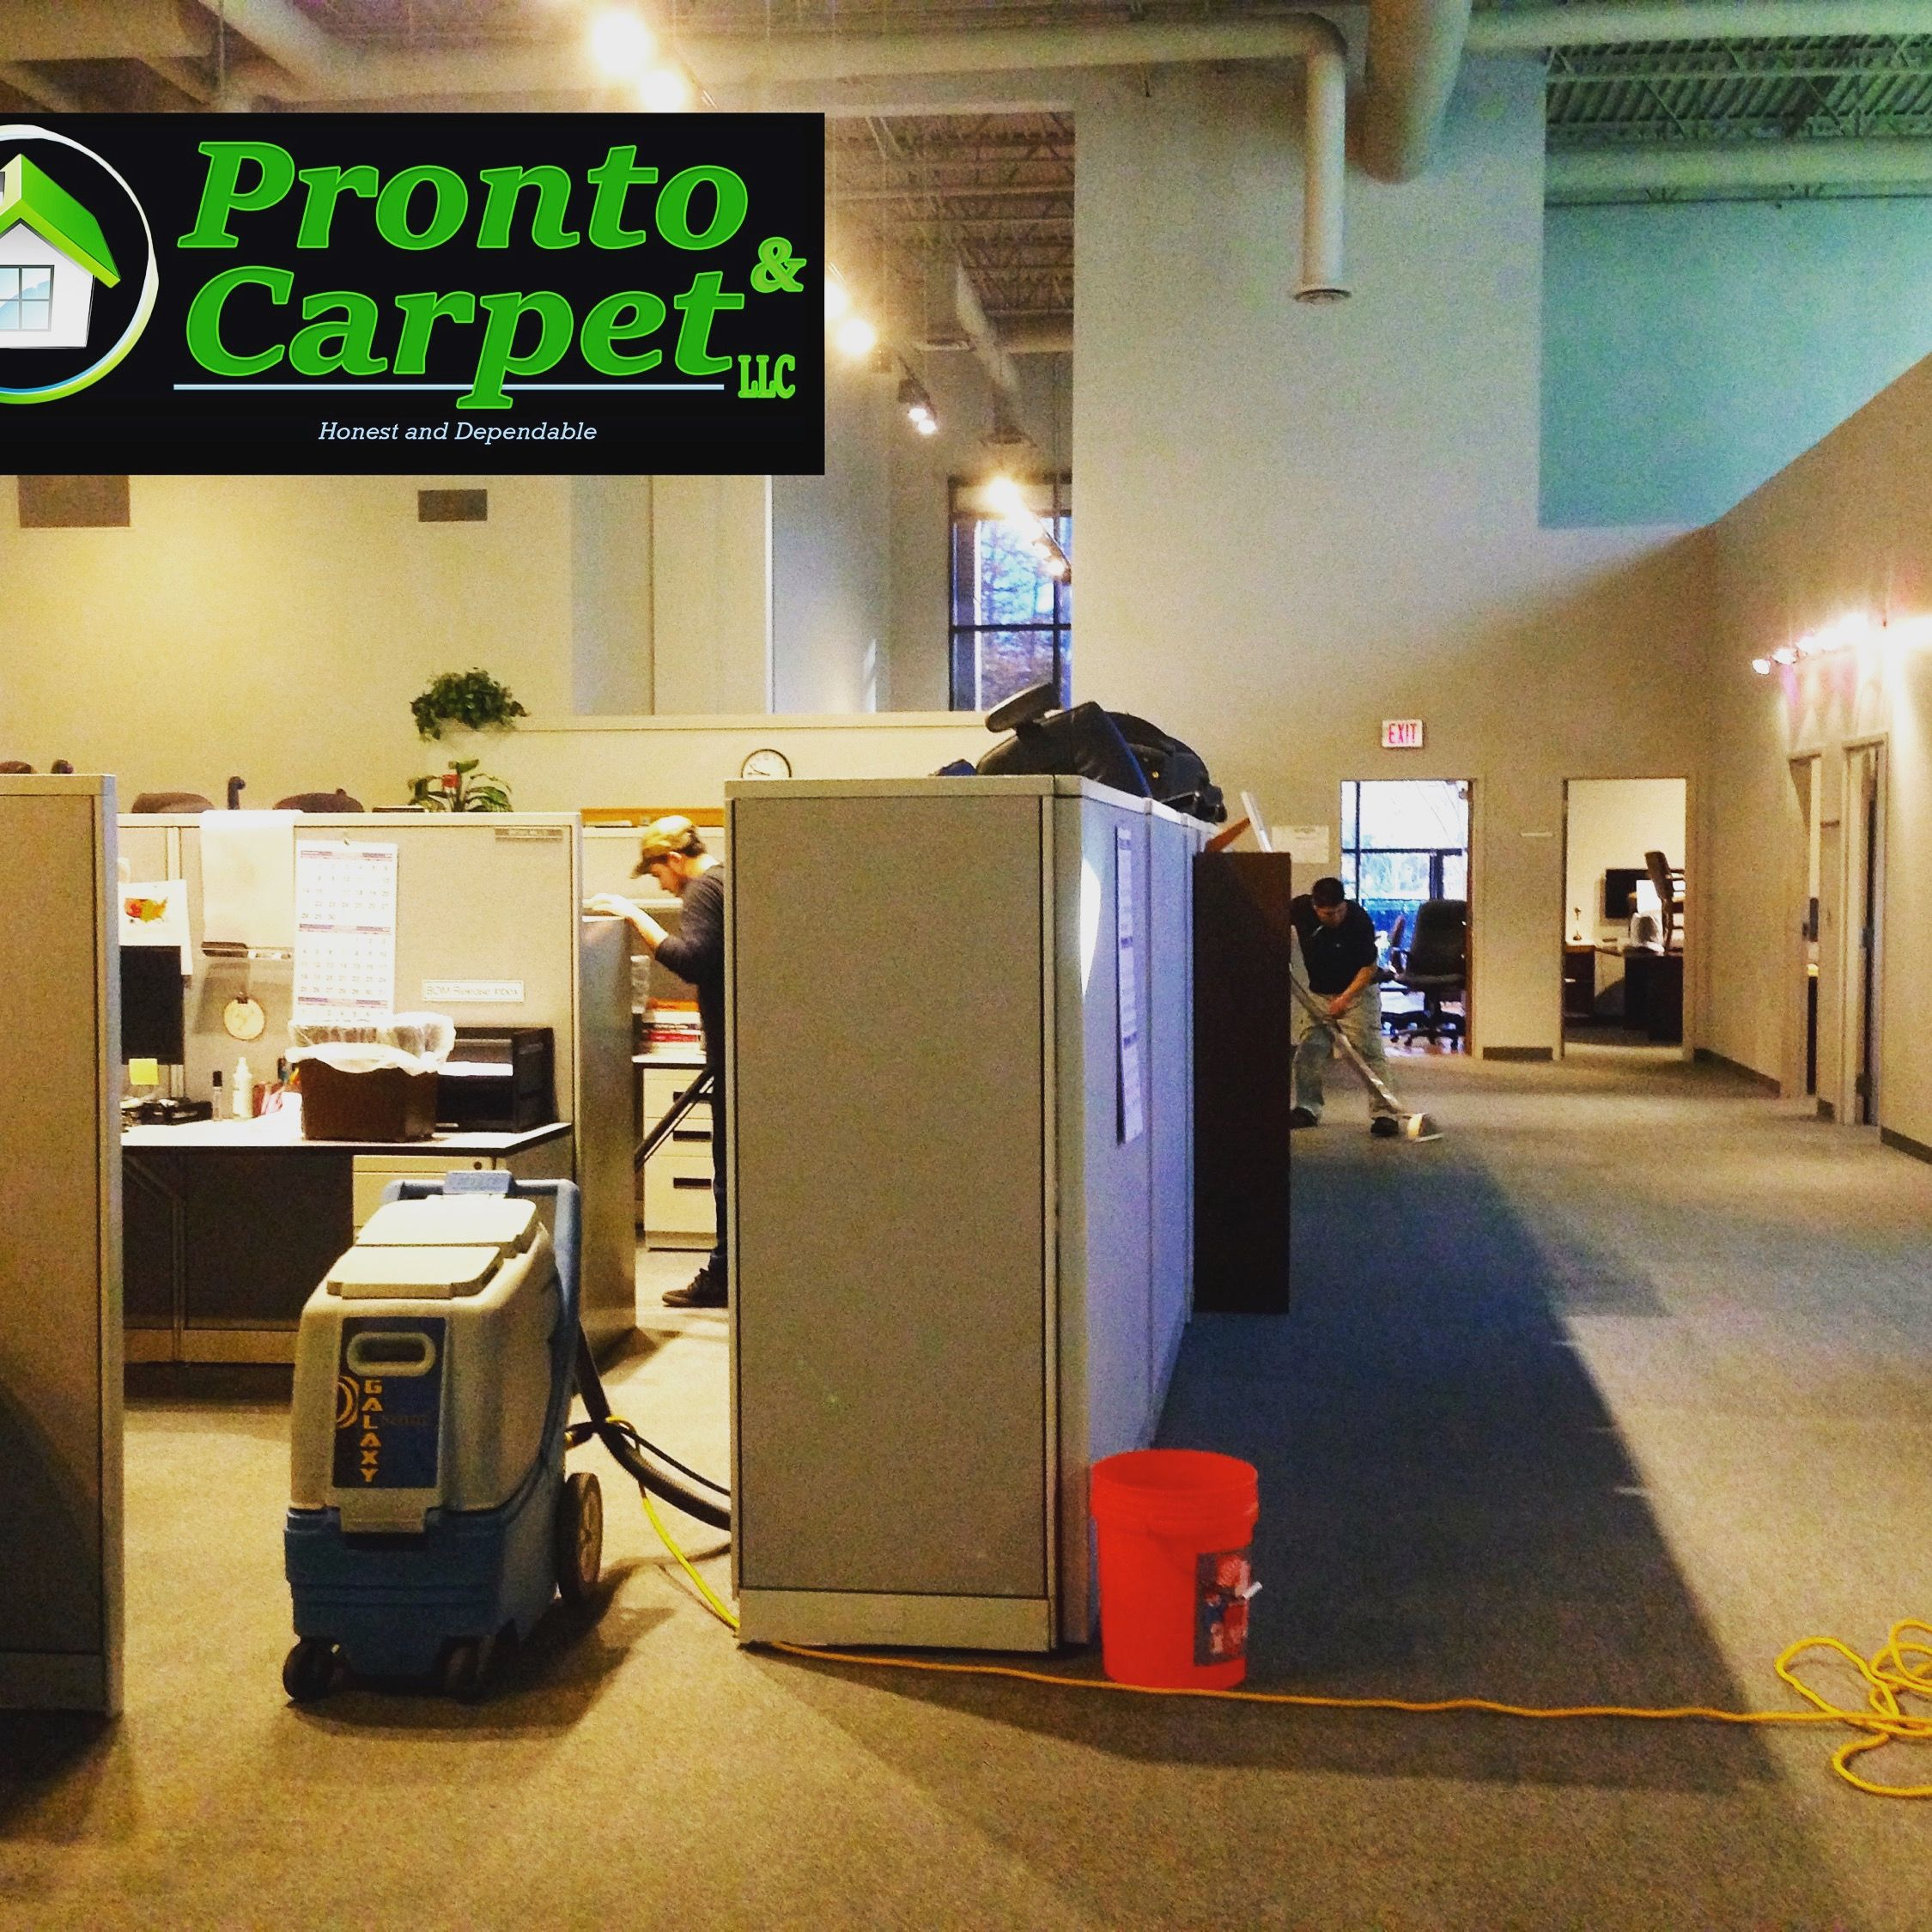 Www Prontoandcarpetllc Com Call Us Now 704 258 9790 Carpet Cleaning Hacks Natural Carpet Cleaning How To Clean Carpet